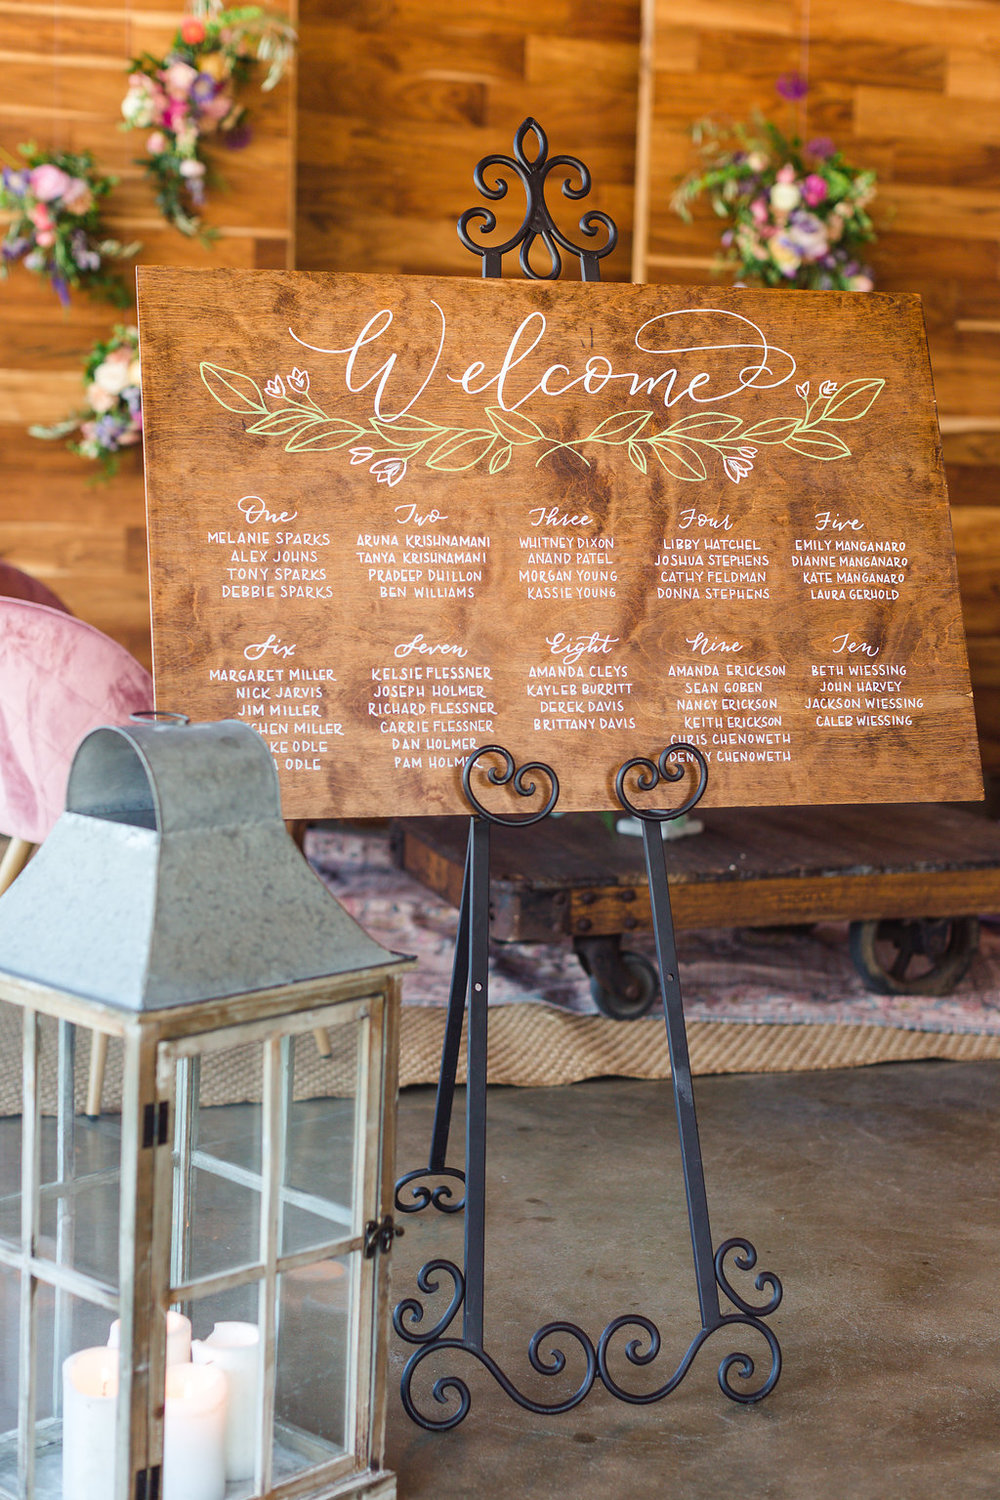 Spruce Rentals - Romantic Spring Wedding with Pear Tree Estate, NRS Photography, Fancy Florals by Nancy, Sugar by Sarah, Apricity Ink, Elite Bridal, Old Oaks Vintage Rentals and Spruce Rentals!